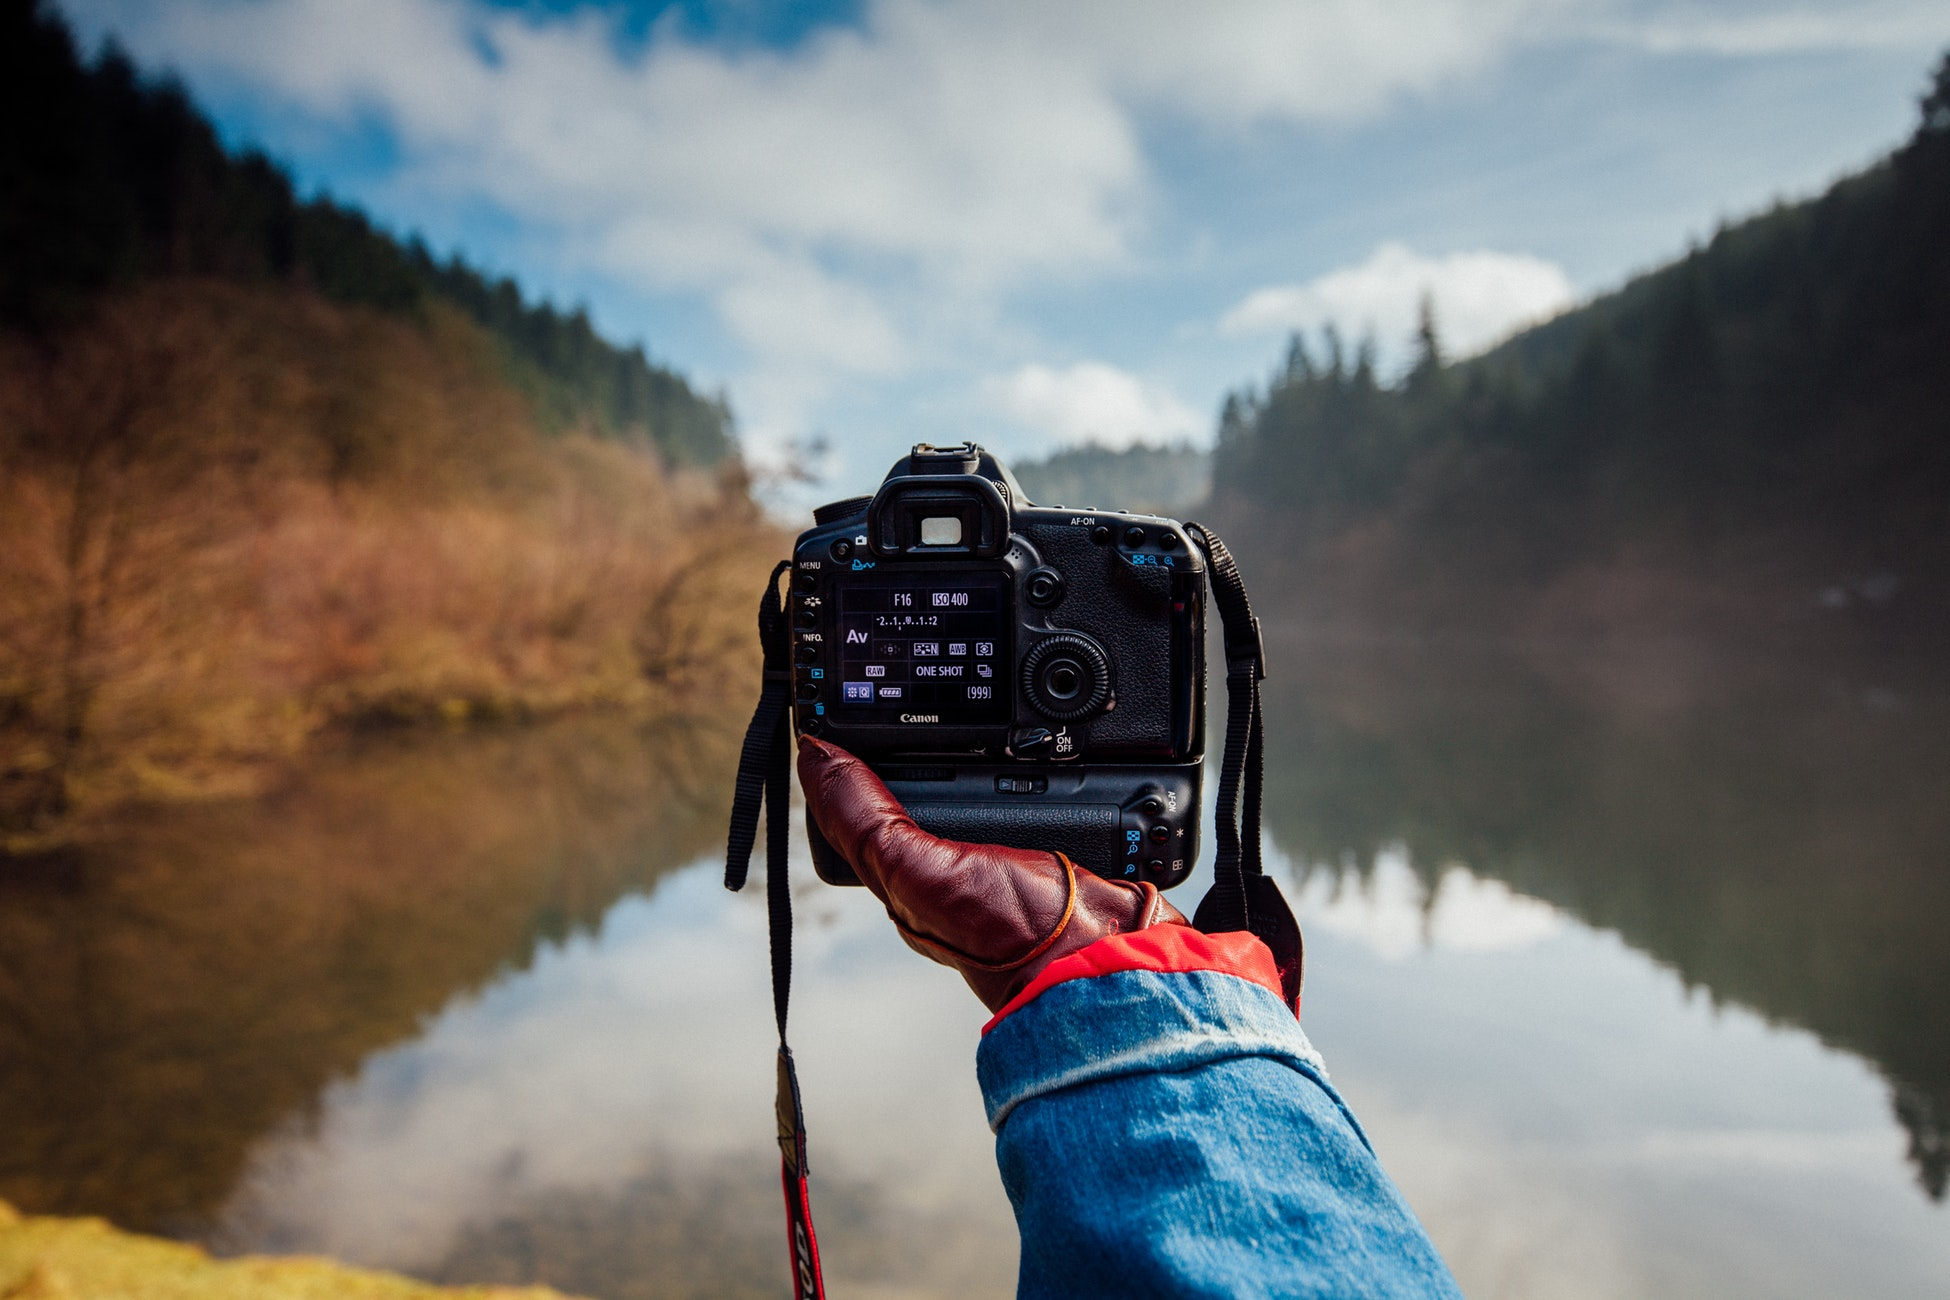 bend photo contest NEWS RELEASE - Interested in photo competitions? Do you consider yourself a Bend, Oregon die-hard? Take a look at this news release I wrote for my Strategic Writing and Media Relations class.